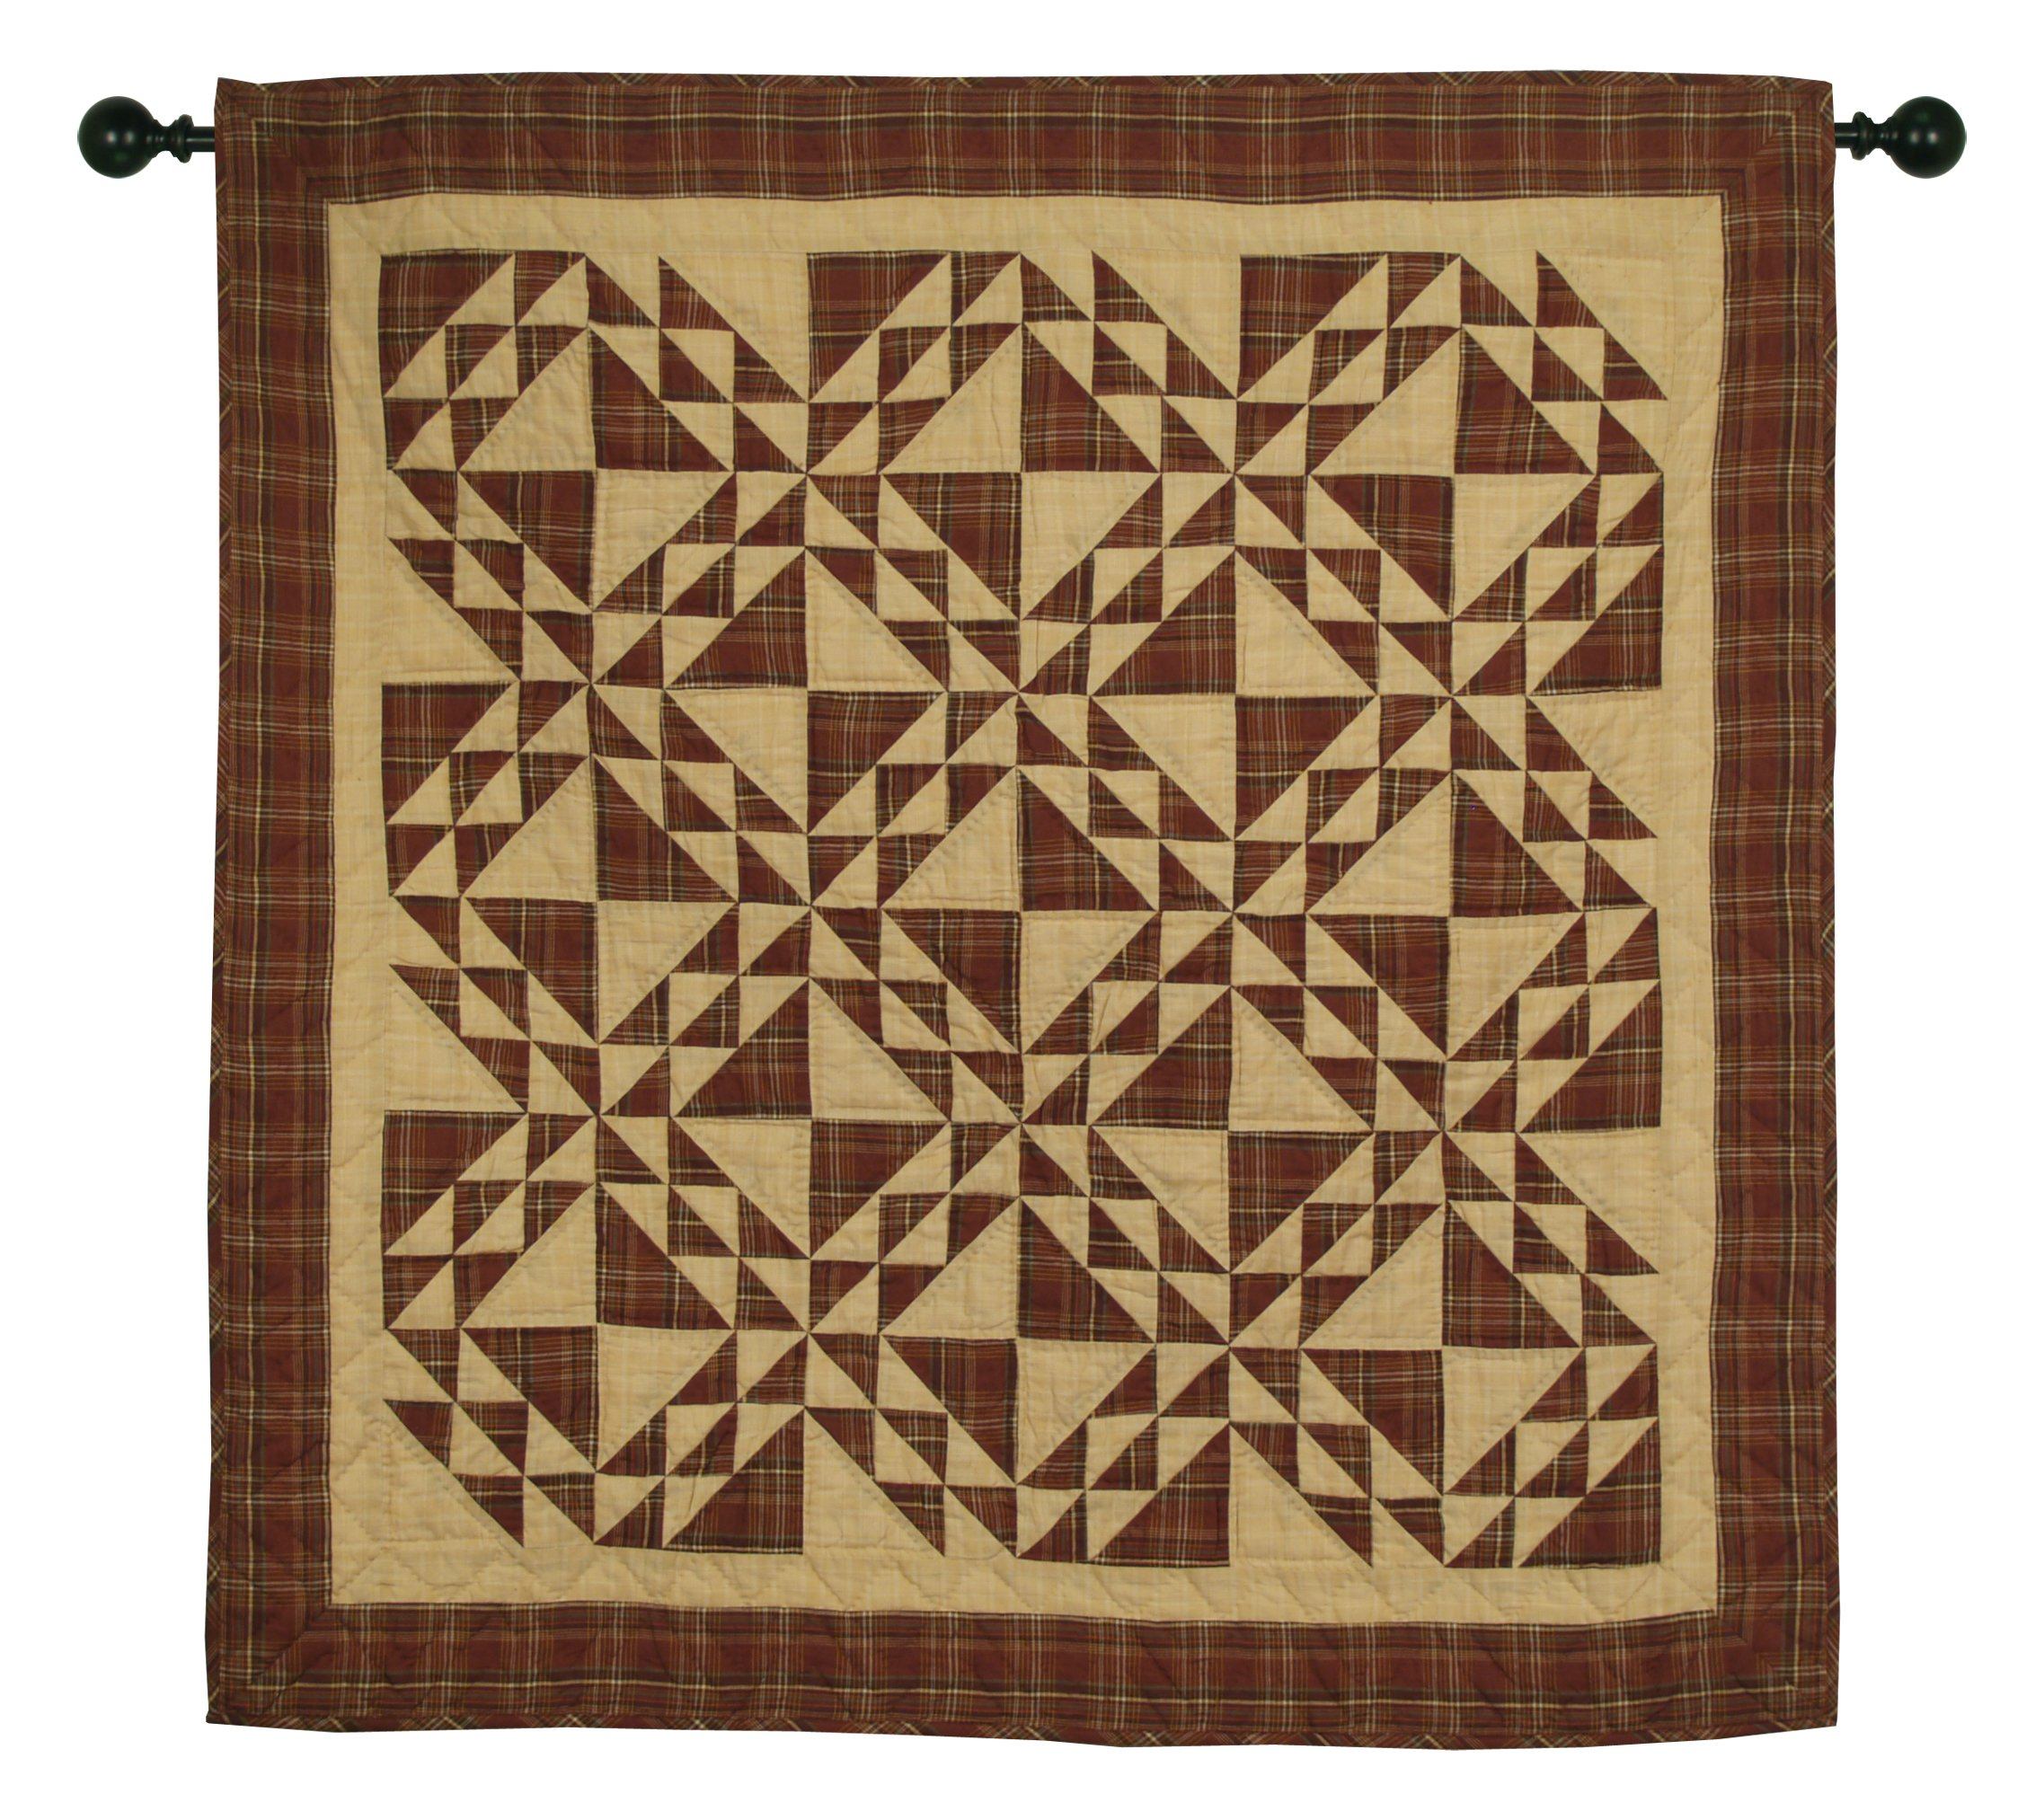 Colonial Patches Burgundy Wall Hanging Quilt 44 Inches by 44 Inches 100% Cotton Handmade Hand Quilted Heirloom Quality by Choices Quilts